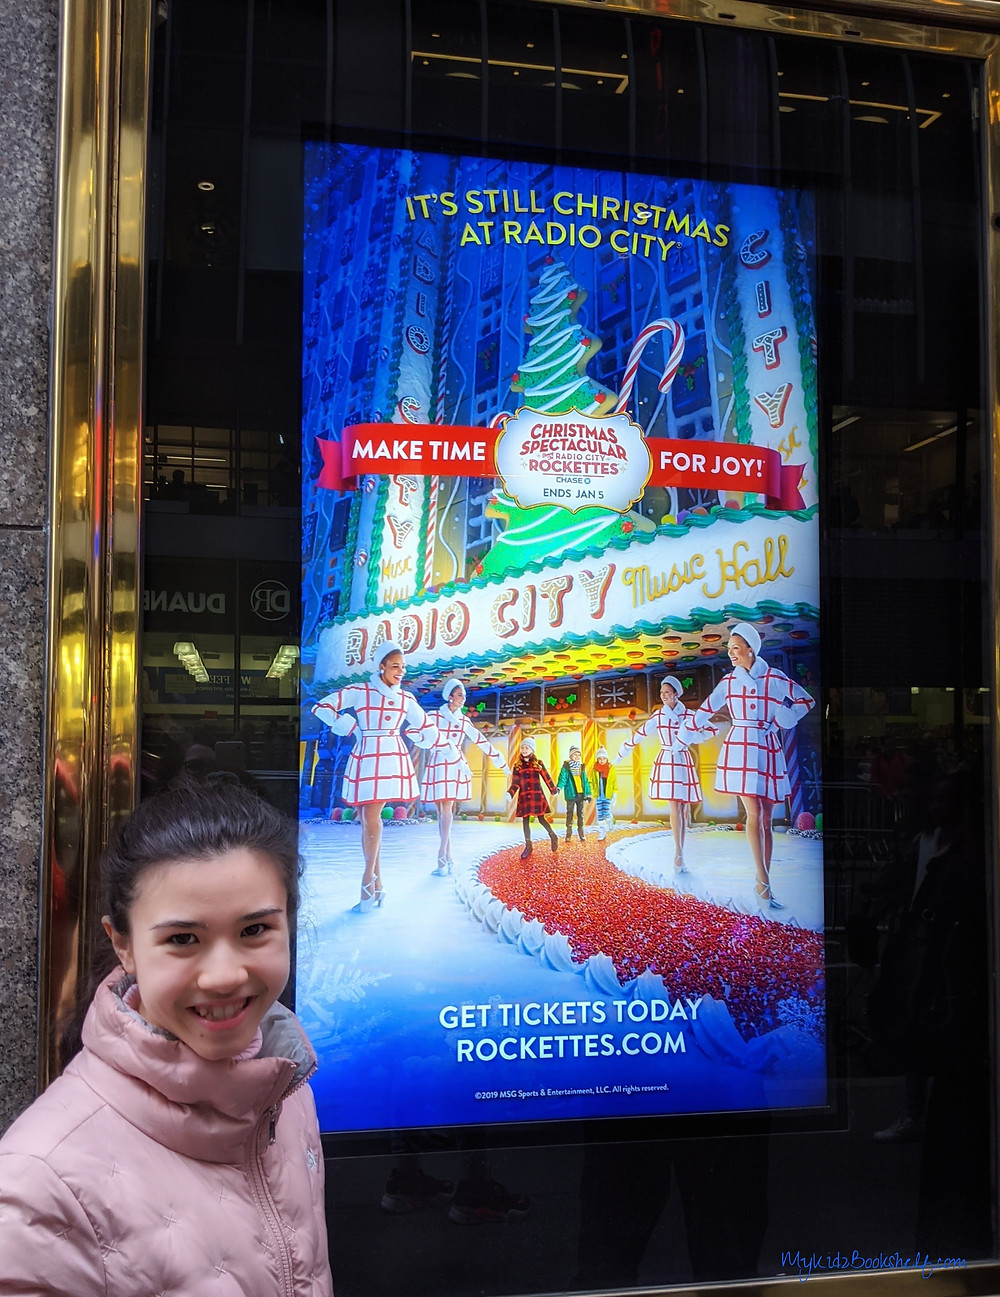 teen-girl-posing-next-to-the-Radio-City-Rockettes-poster